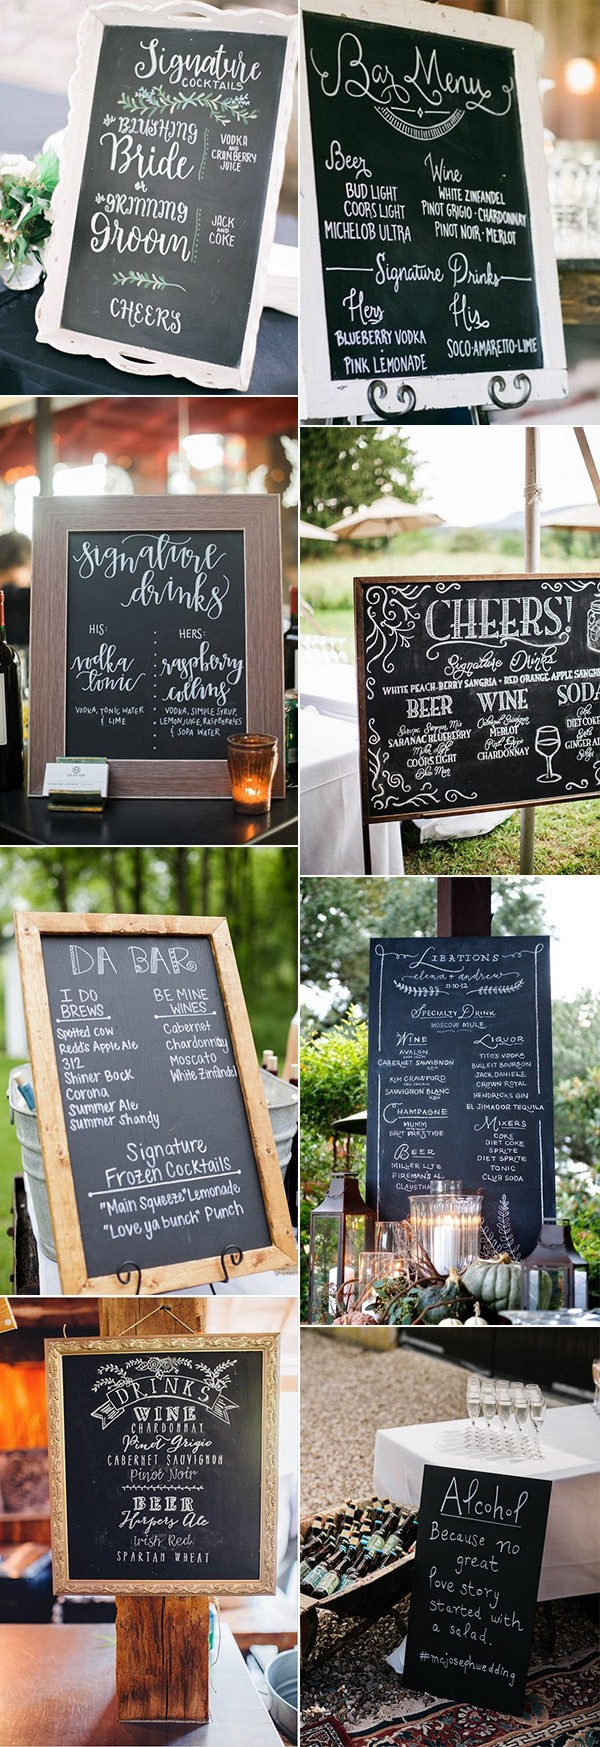 chic chalkboard wedding sign ideas